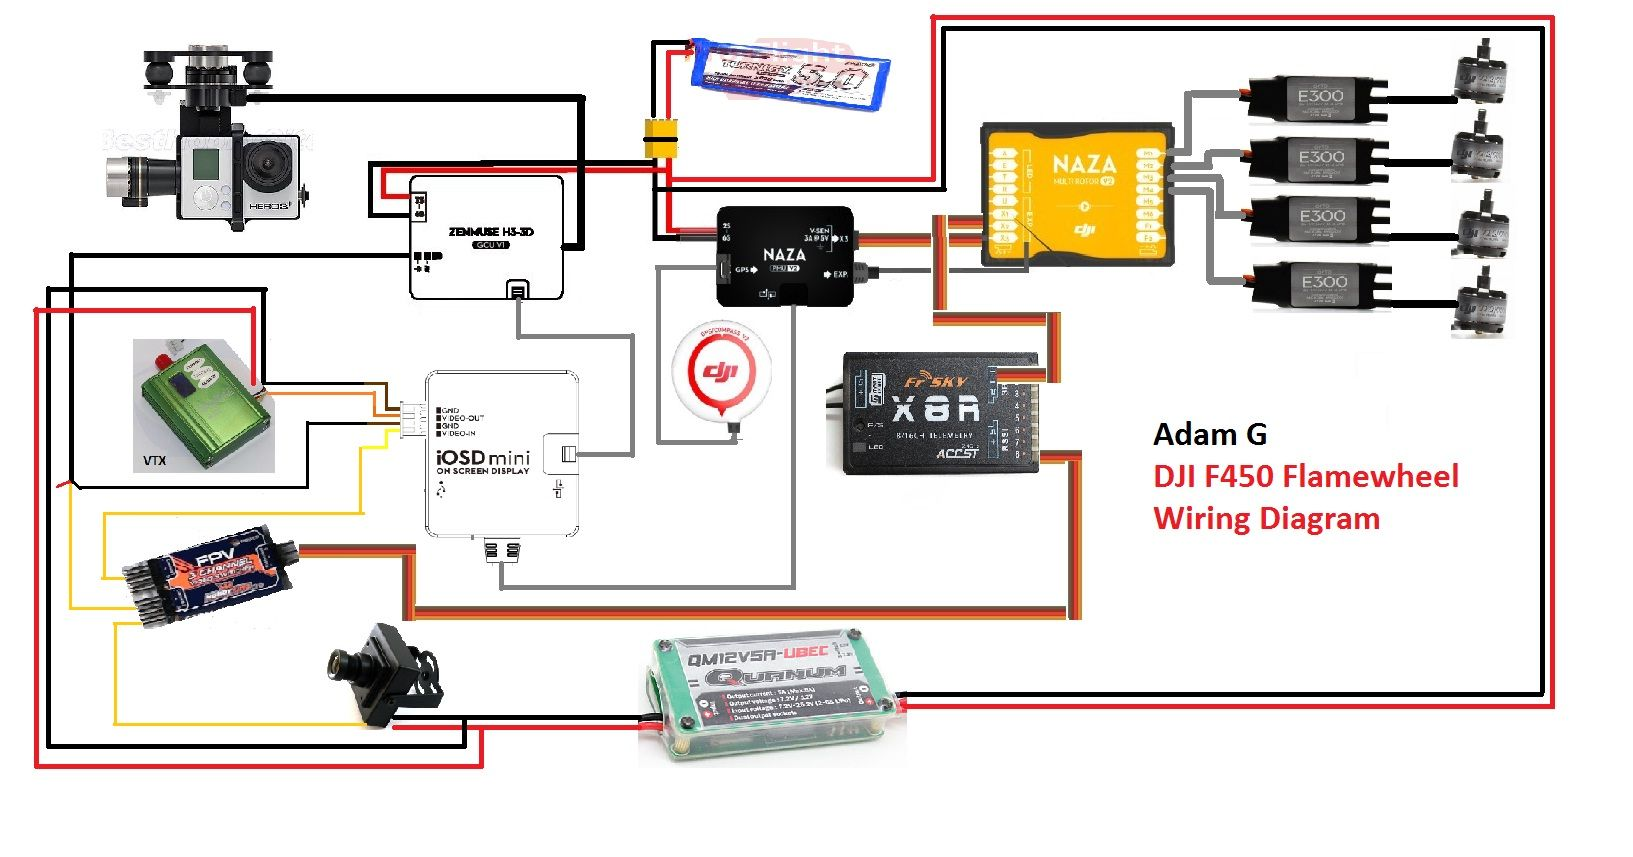 Pin De Jorge Francisco Antunes Em Fpv Switch Pinterest Diagram E Quadcopter Flame Wheel 450 Wiring